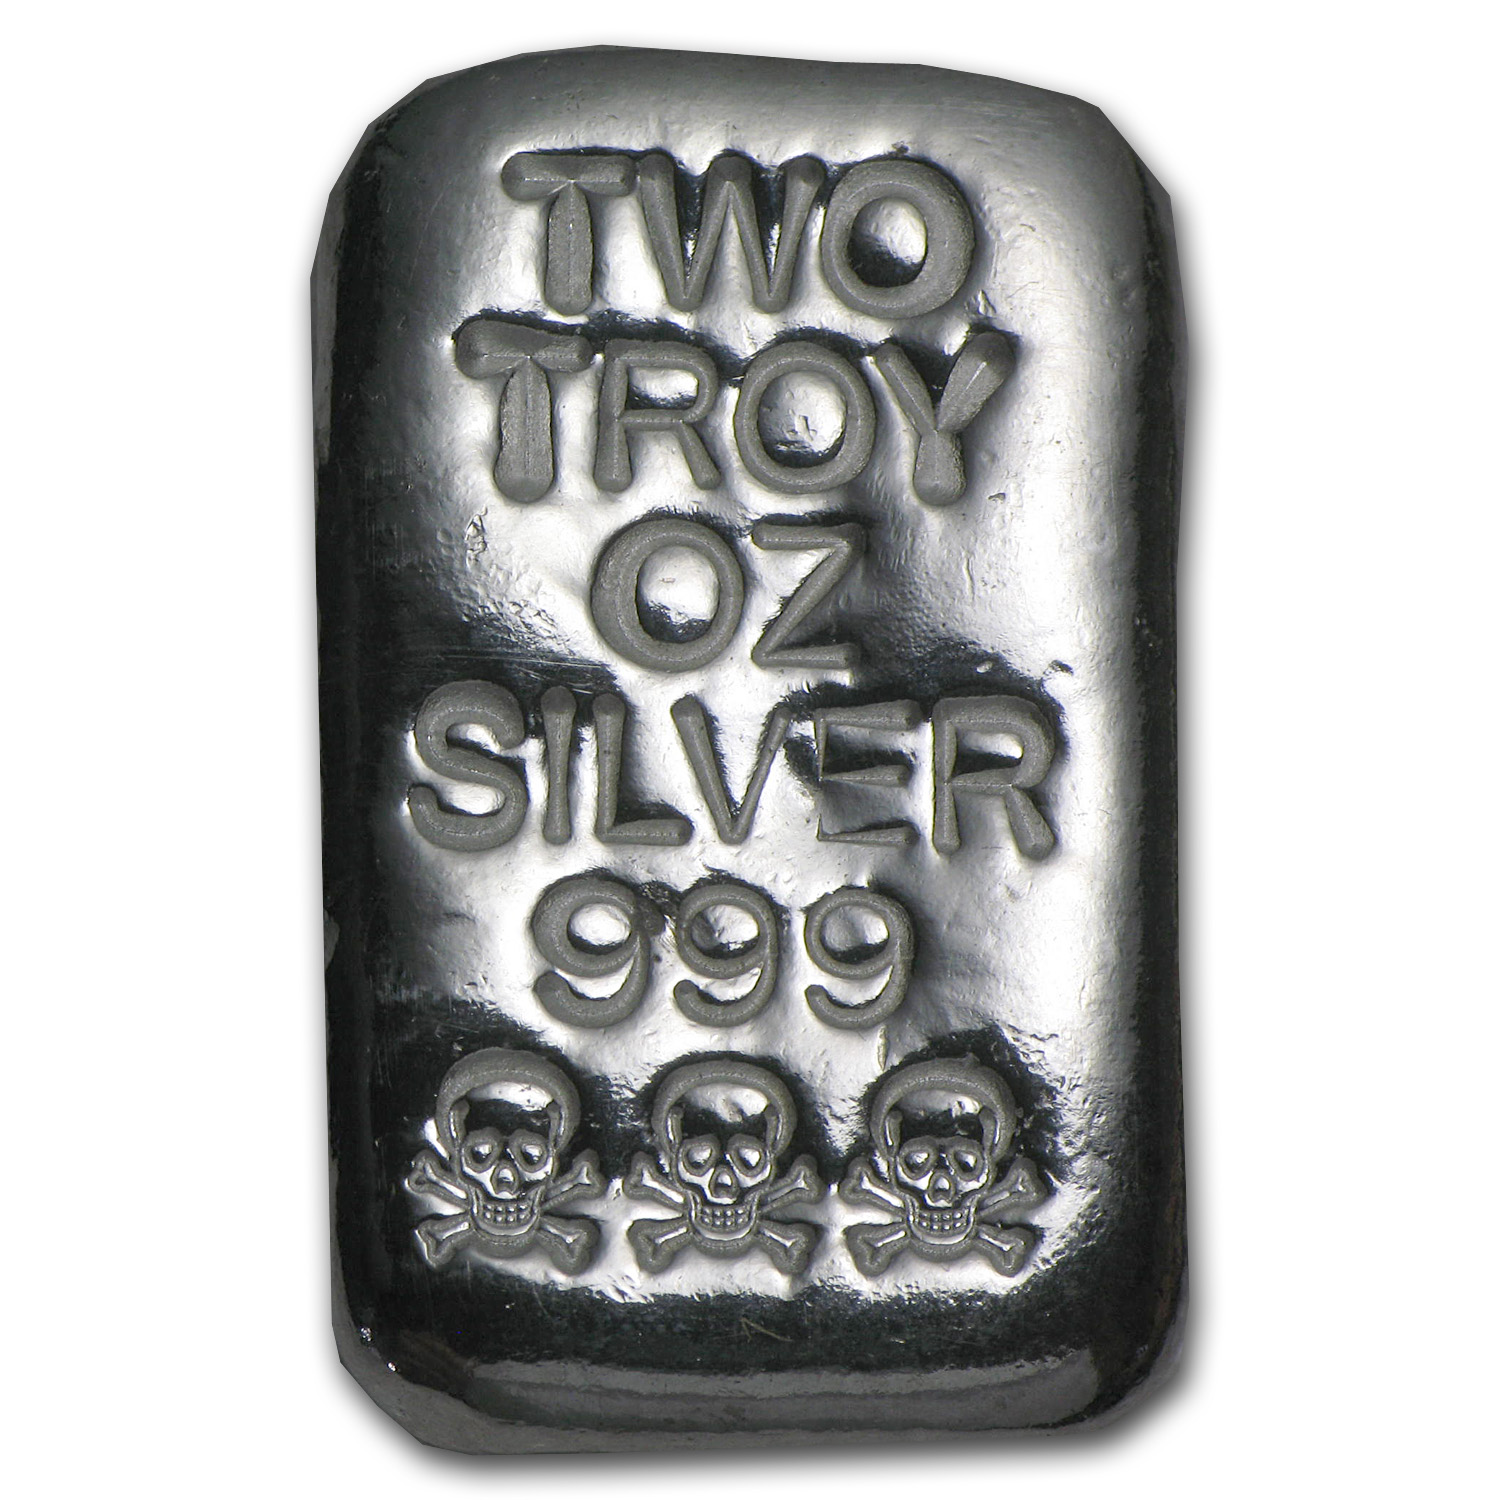 2 oz Silver Bar - Skull & Bones (Atlantis Mint)